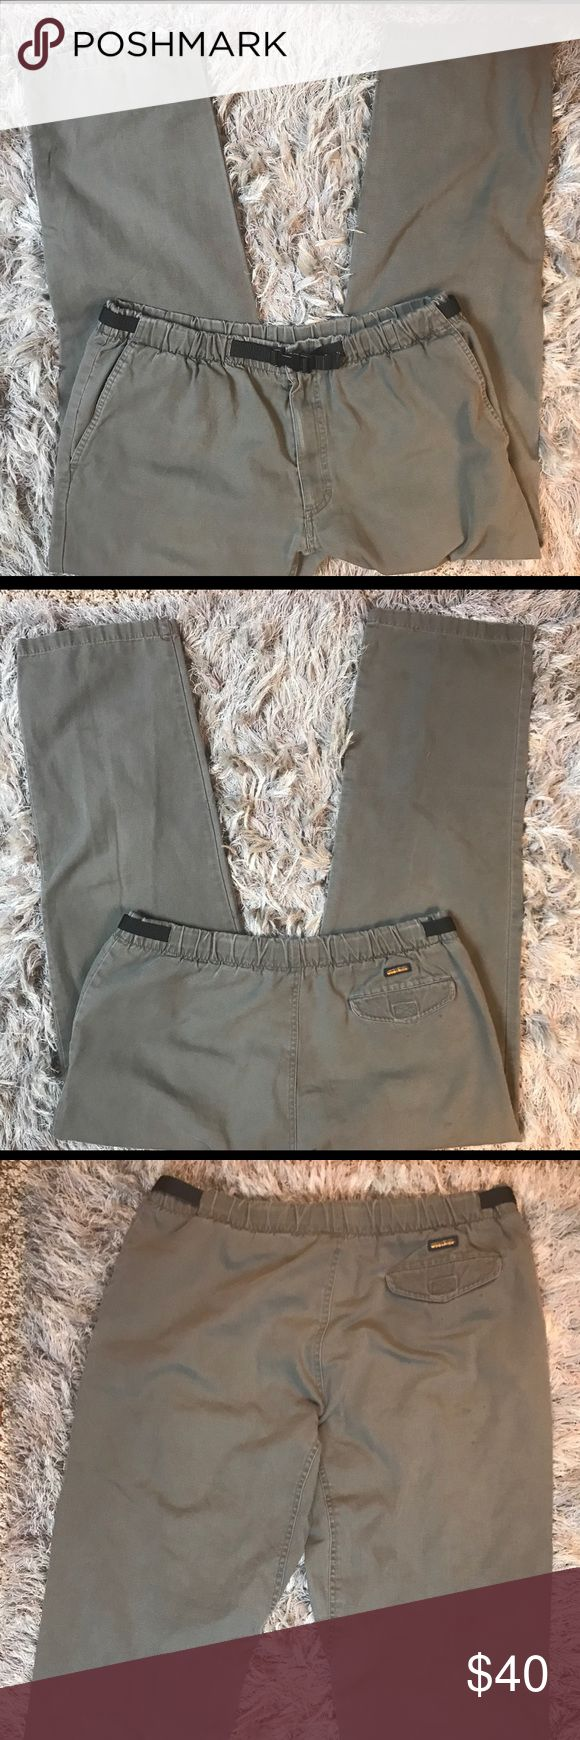 ♻️Woolrich Mens Khaki pants size XL Woolrich Mens Khaki Pants with adjustable belt   Size - XL  Color - Green   Great Condition Woolrich Pants Chinos & Khakis